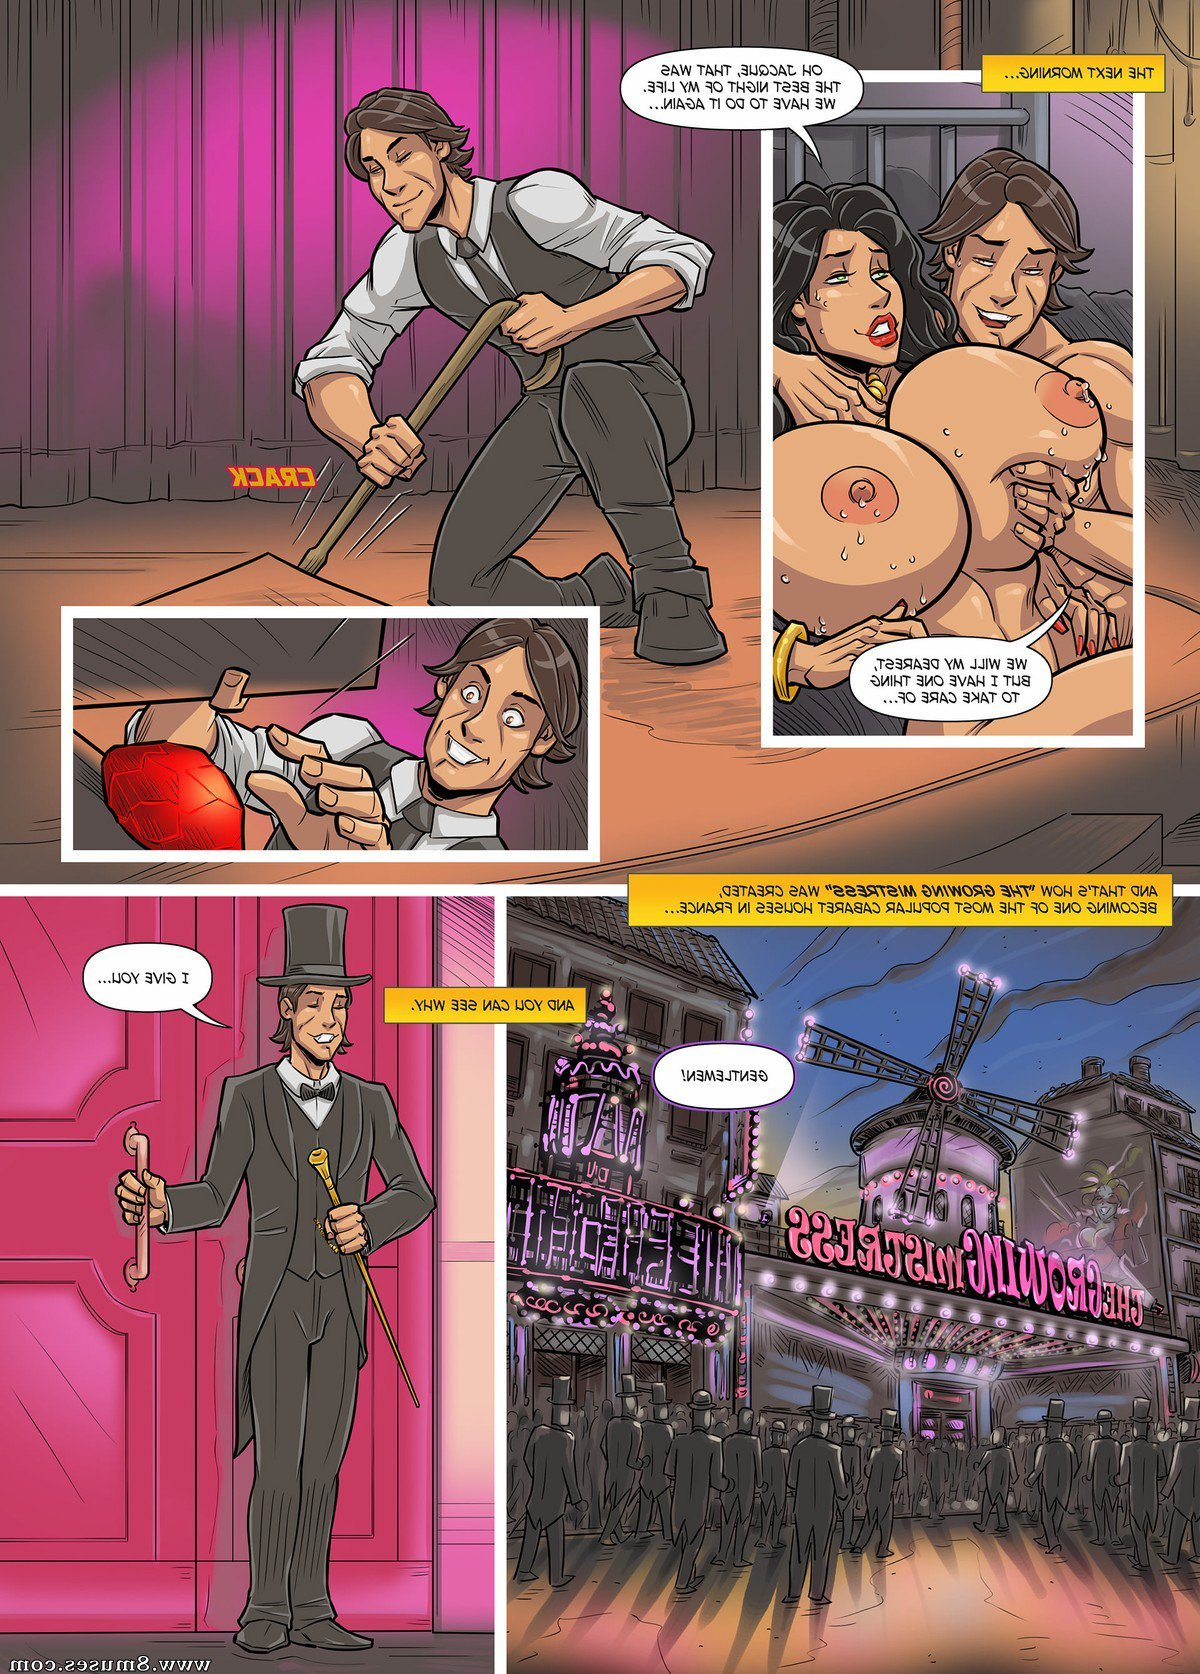 Expansionfan-Comics/The-Growing-Mistress/Issue-1 The_Growing_Mistress_-_Issue_1_13.jpg